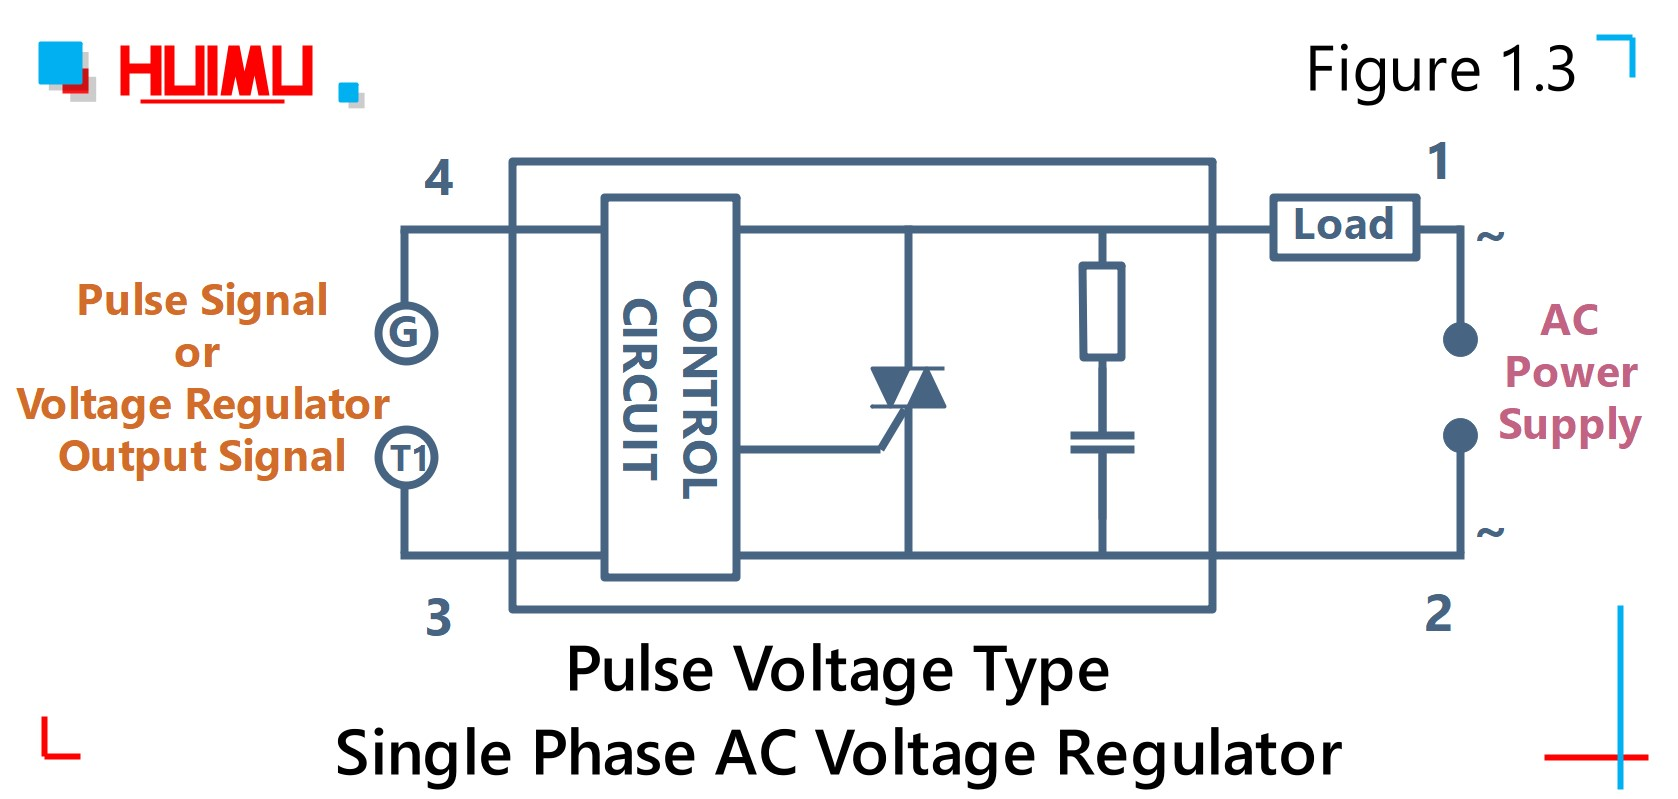 How to wire MGR mager MGR-25DV digital signal type single phase AC voltage regulator? More detail via www.@huimultd.com